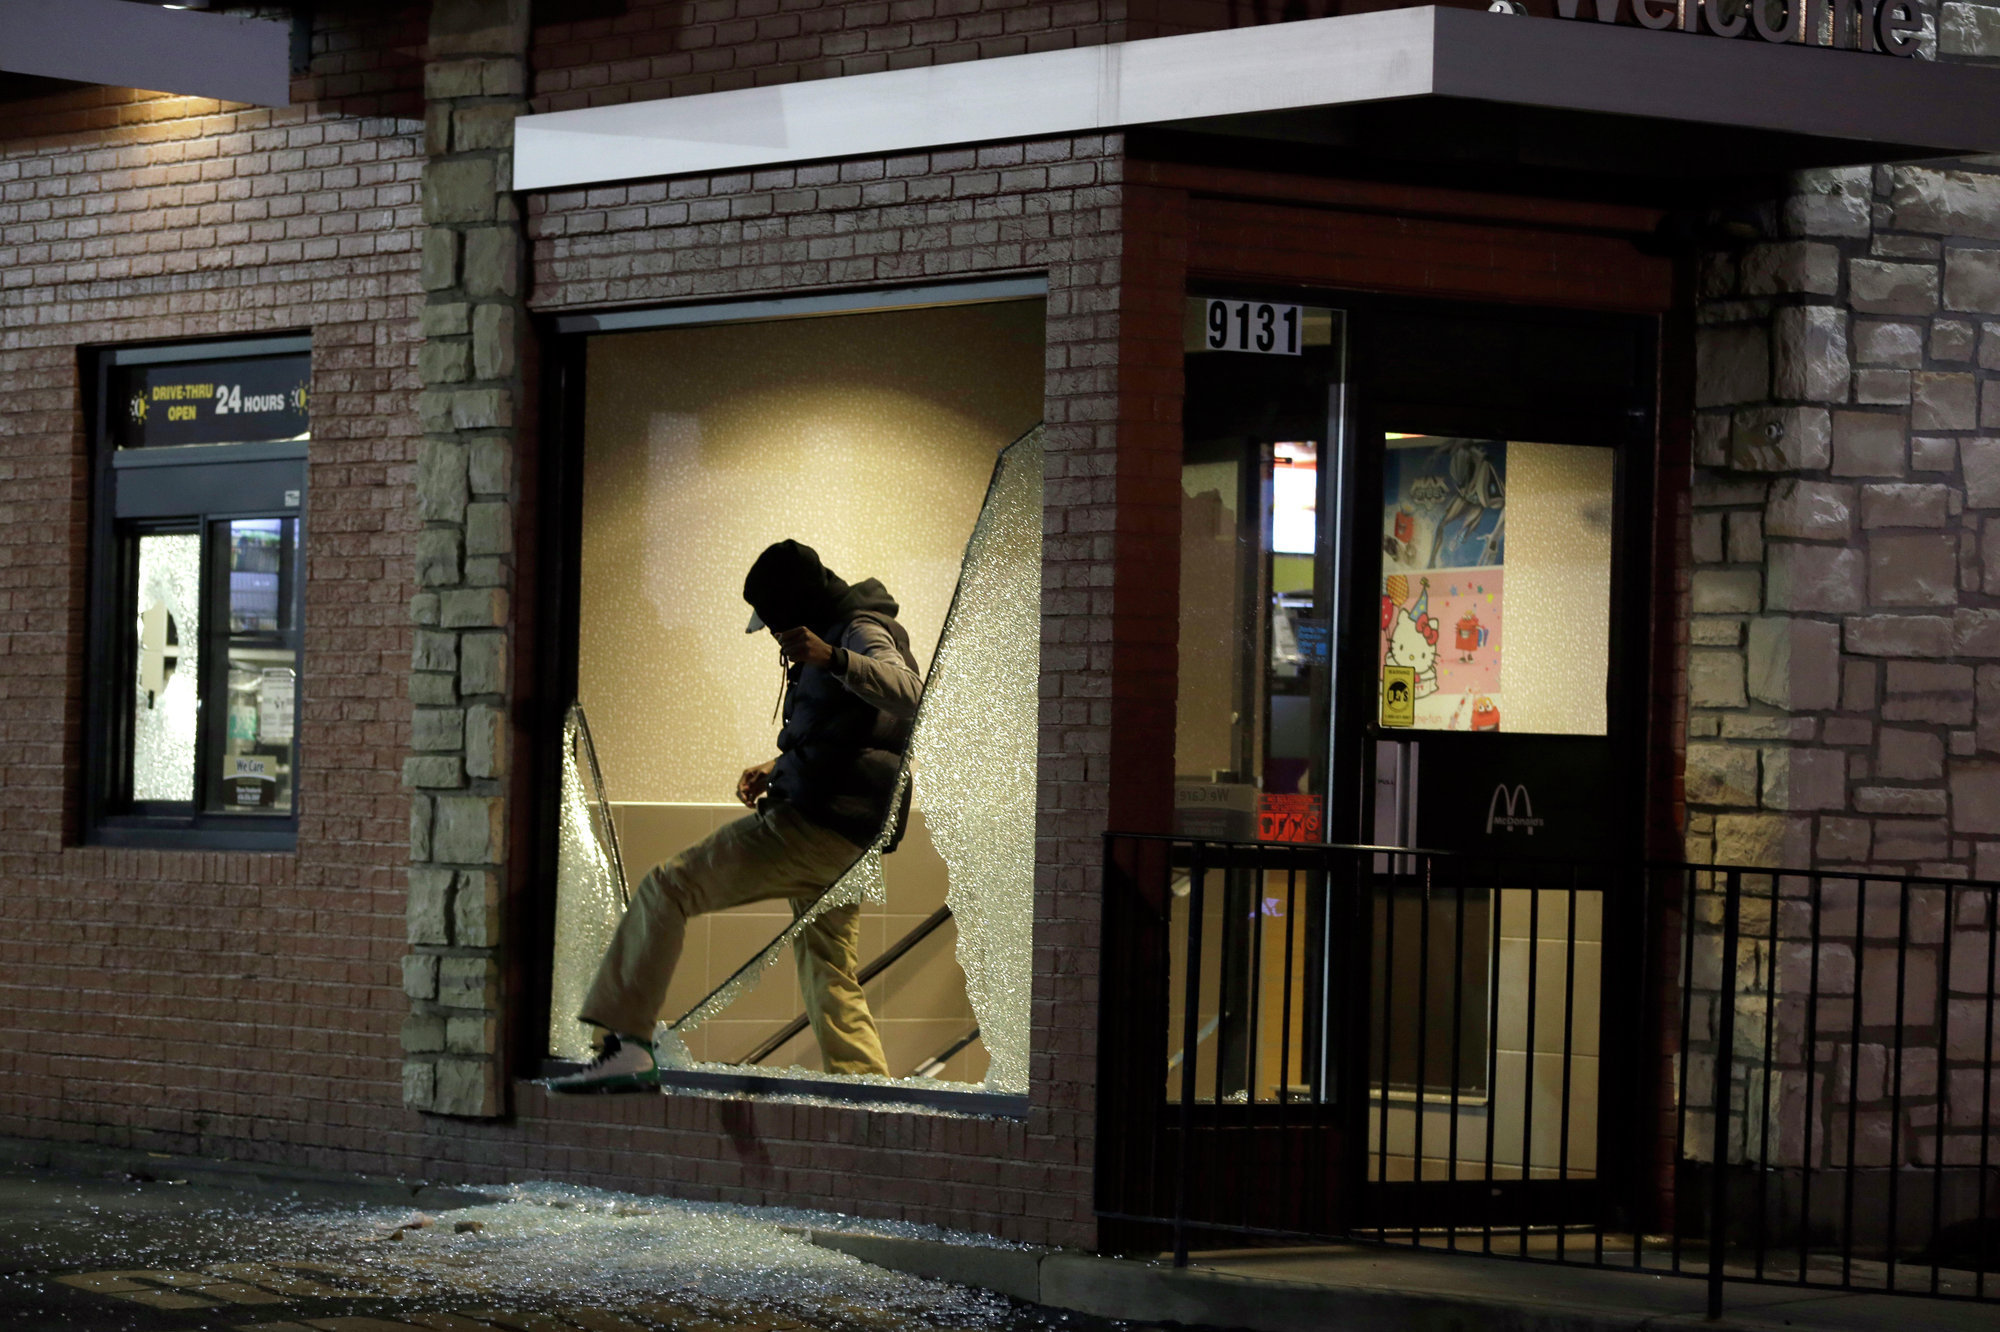 A man steps out of a vandalized store after the announcement of the grand jury decision in Ferguson